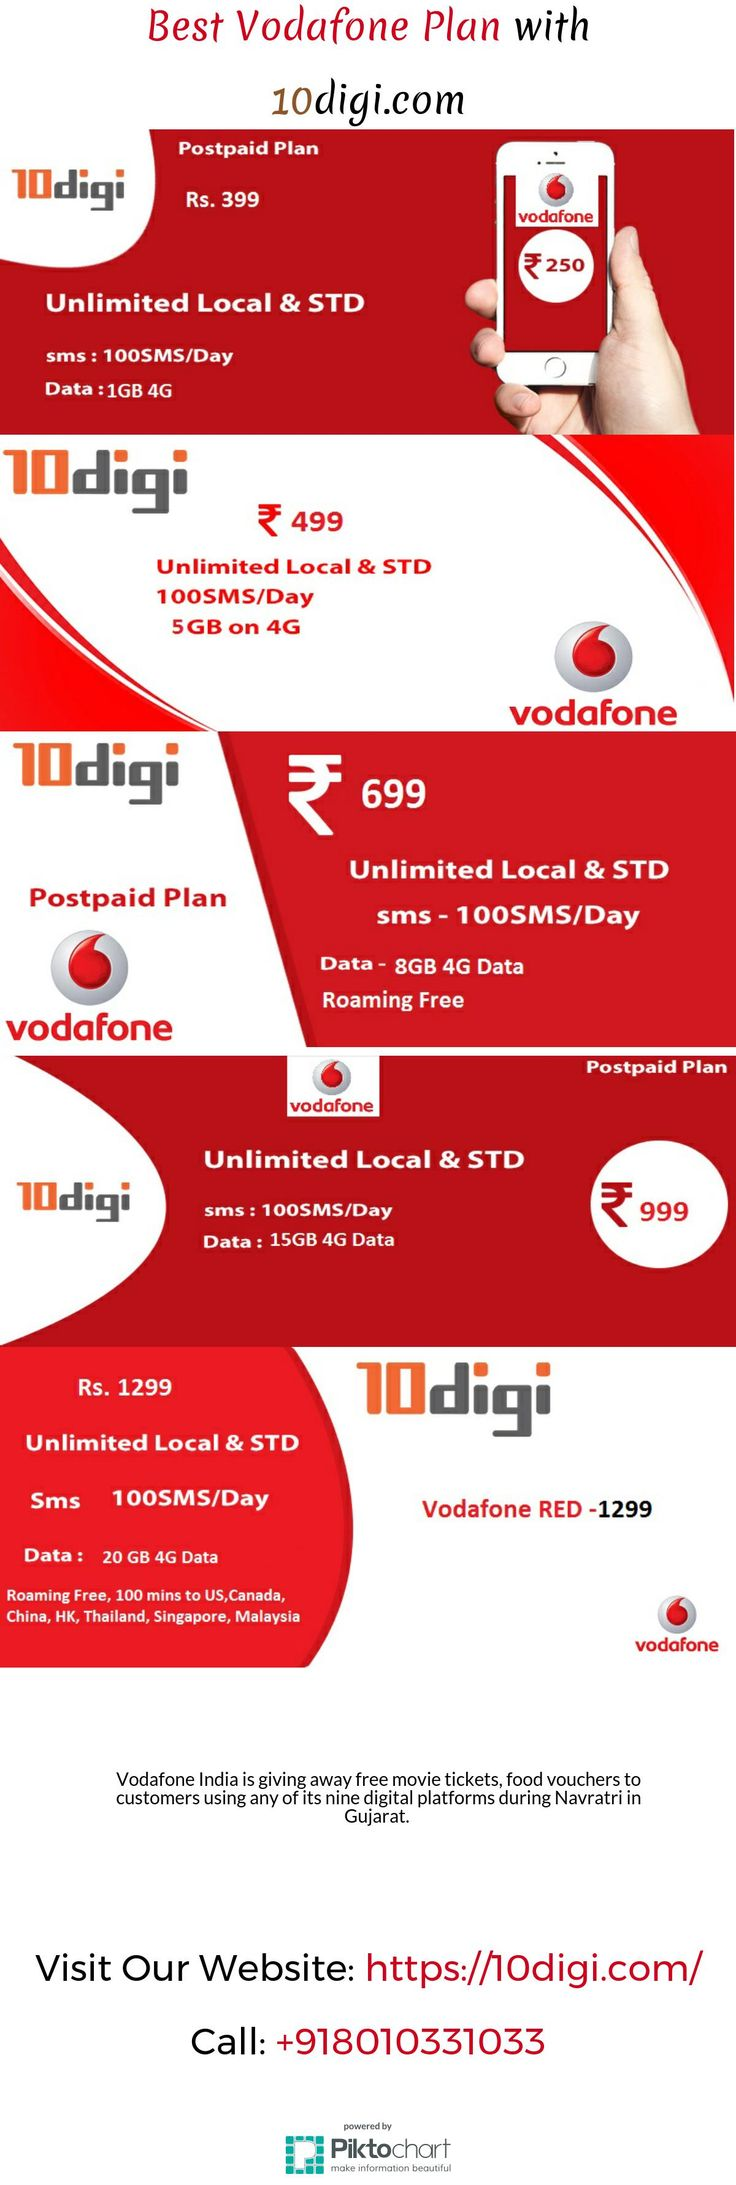 Vodafone India is giving away free movie tickets, food vouchers to customers using any of its nine digital platforms during Navratri in Gujarat.